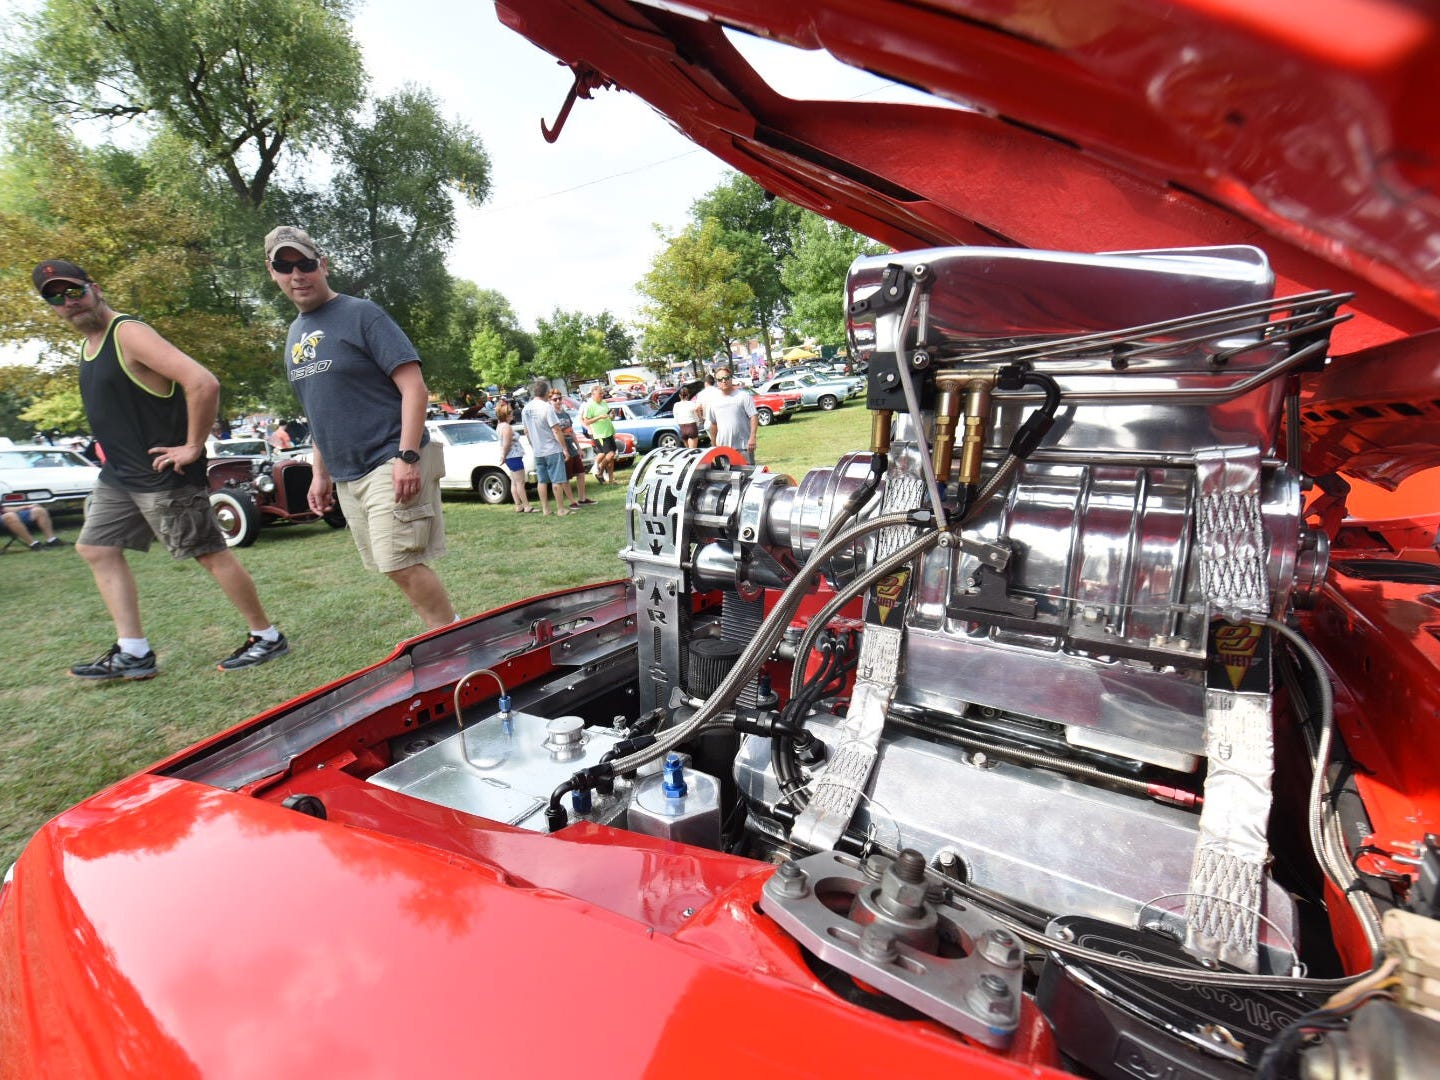 The chrome supercharger and blower is a crowd favorite on this Ford Thunderbird race car.